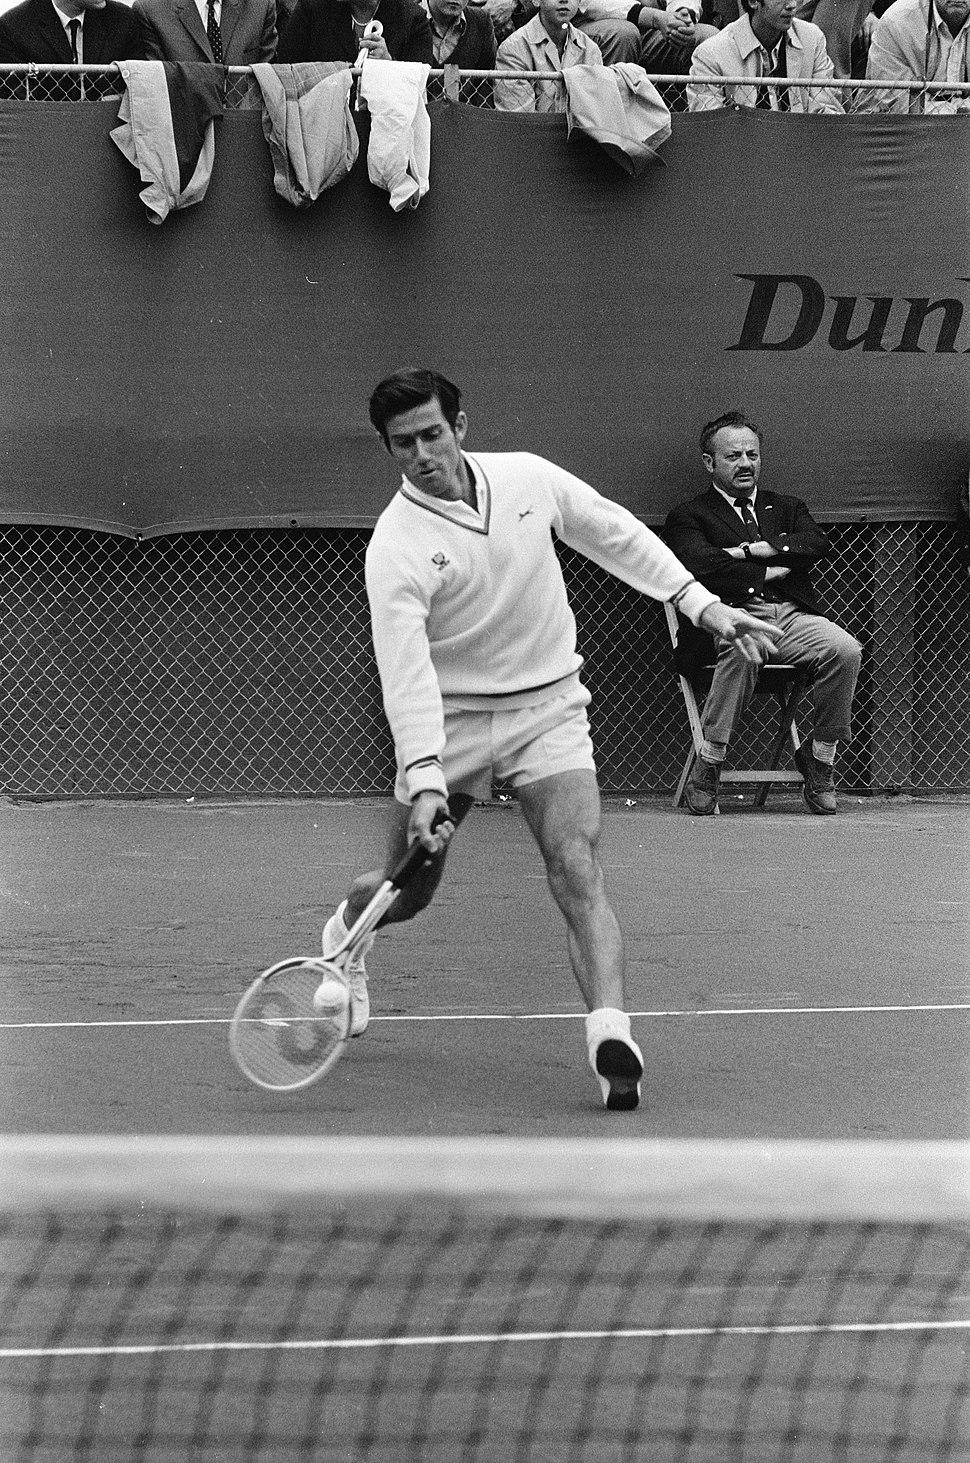 Ken Rosewall playing tennis